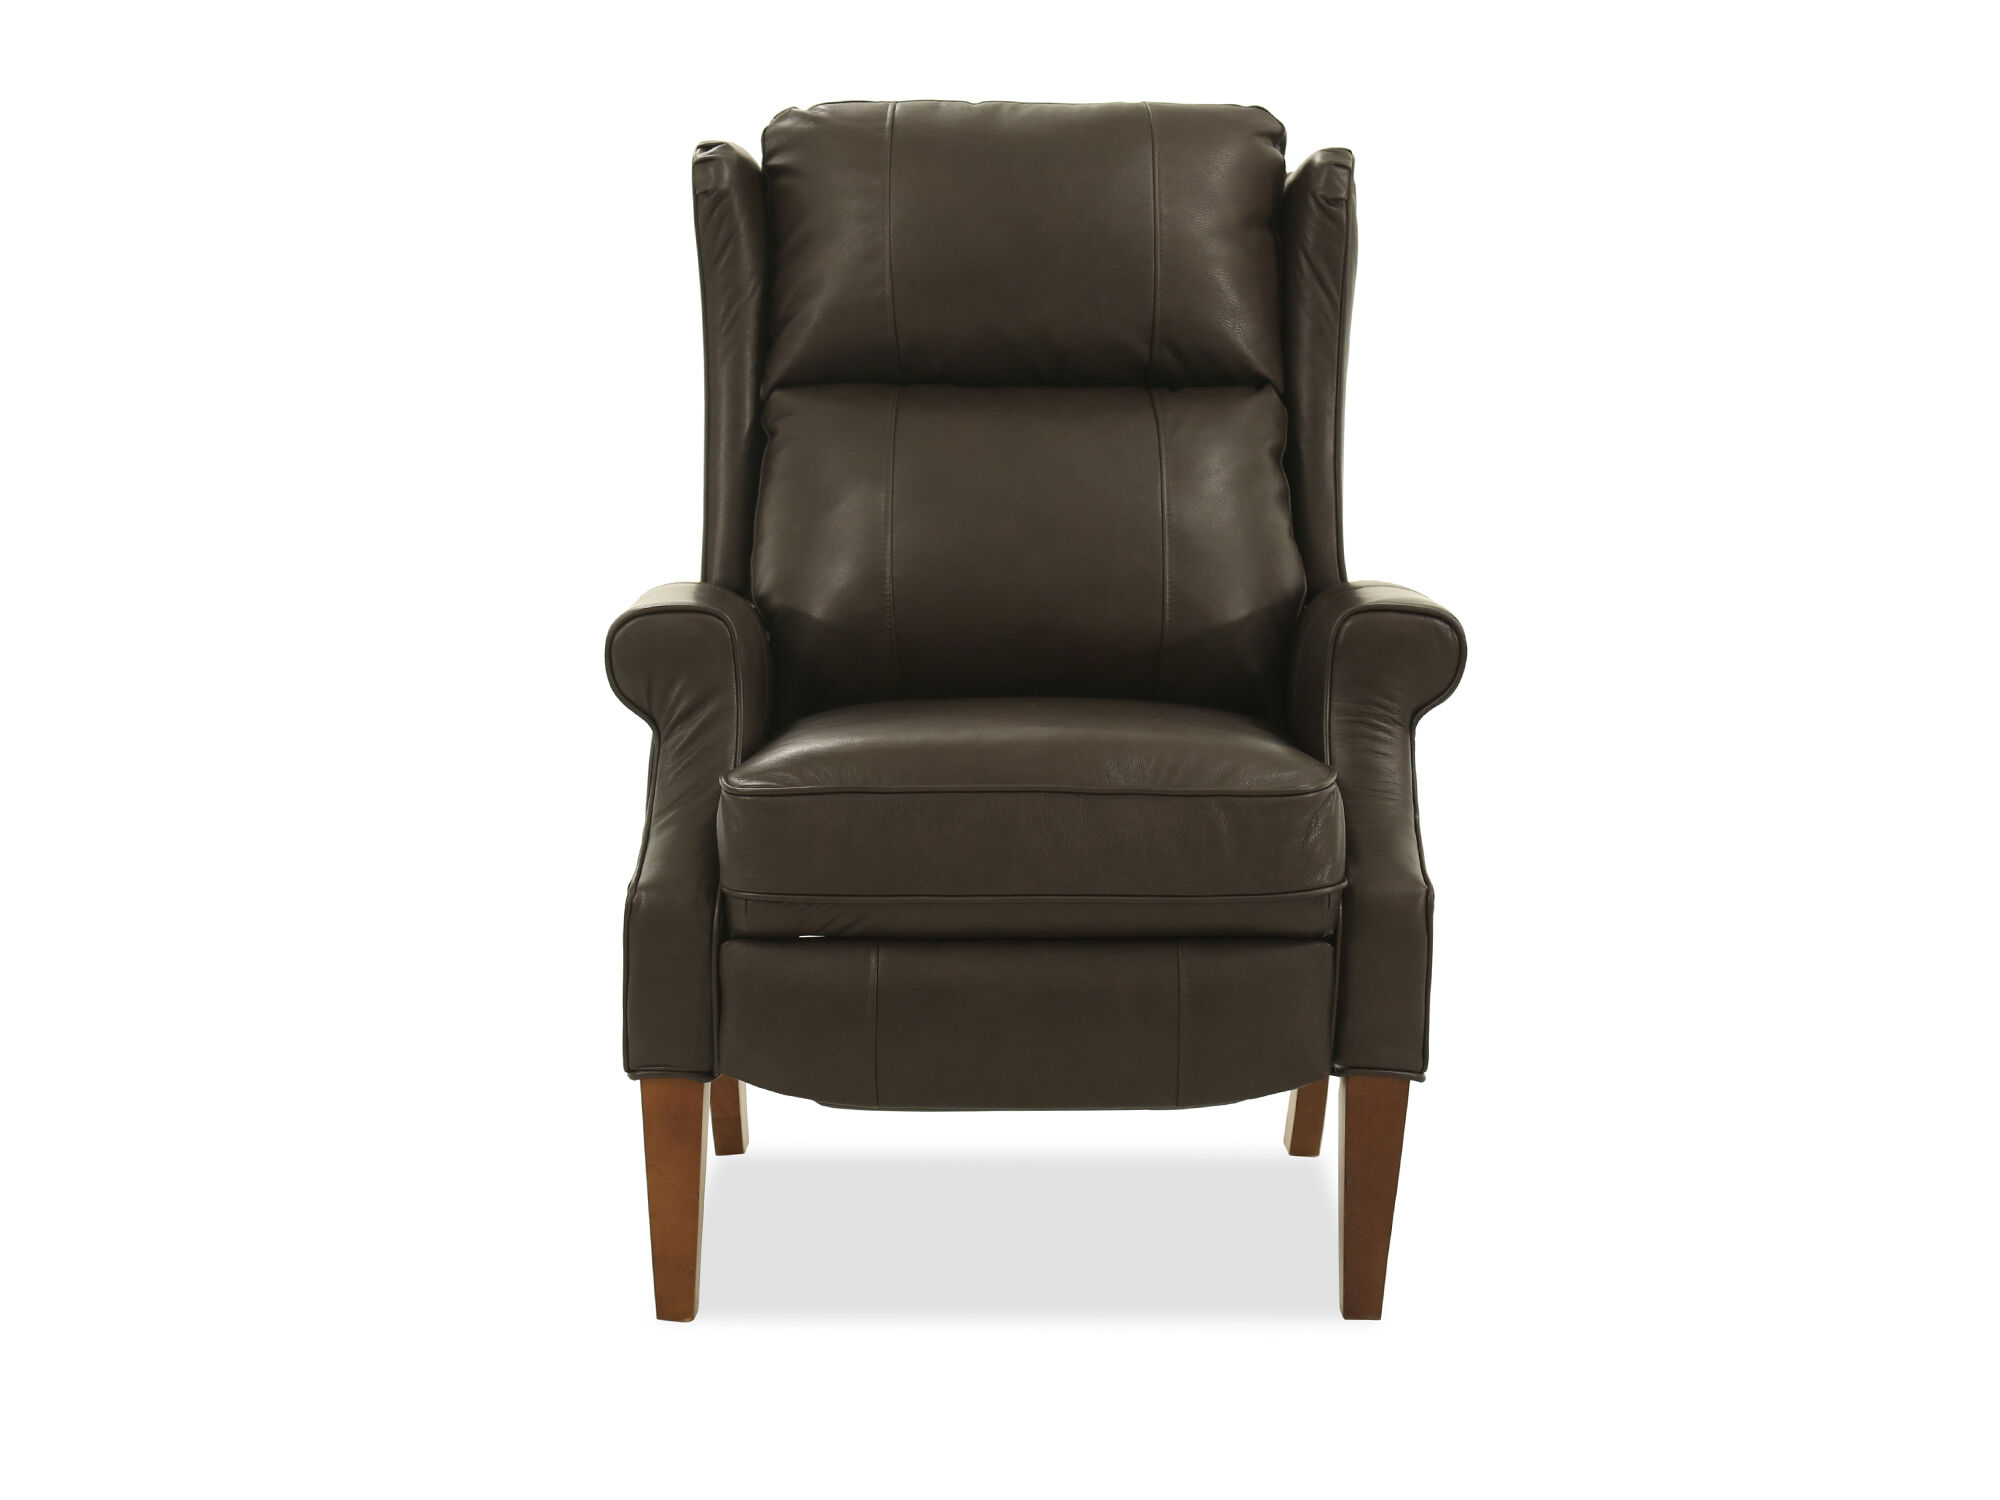 dining wingback chairs king and queen throne for rent 30.5